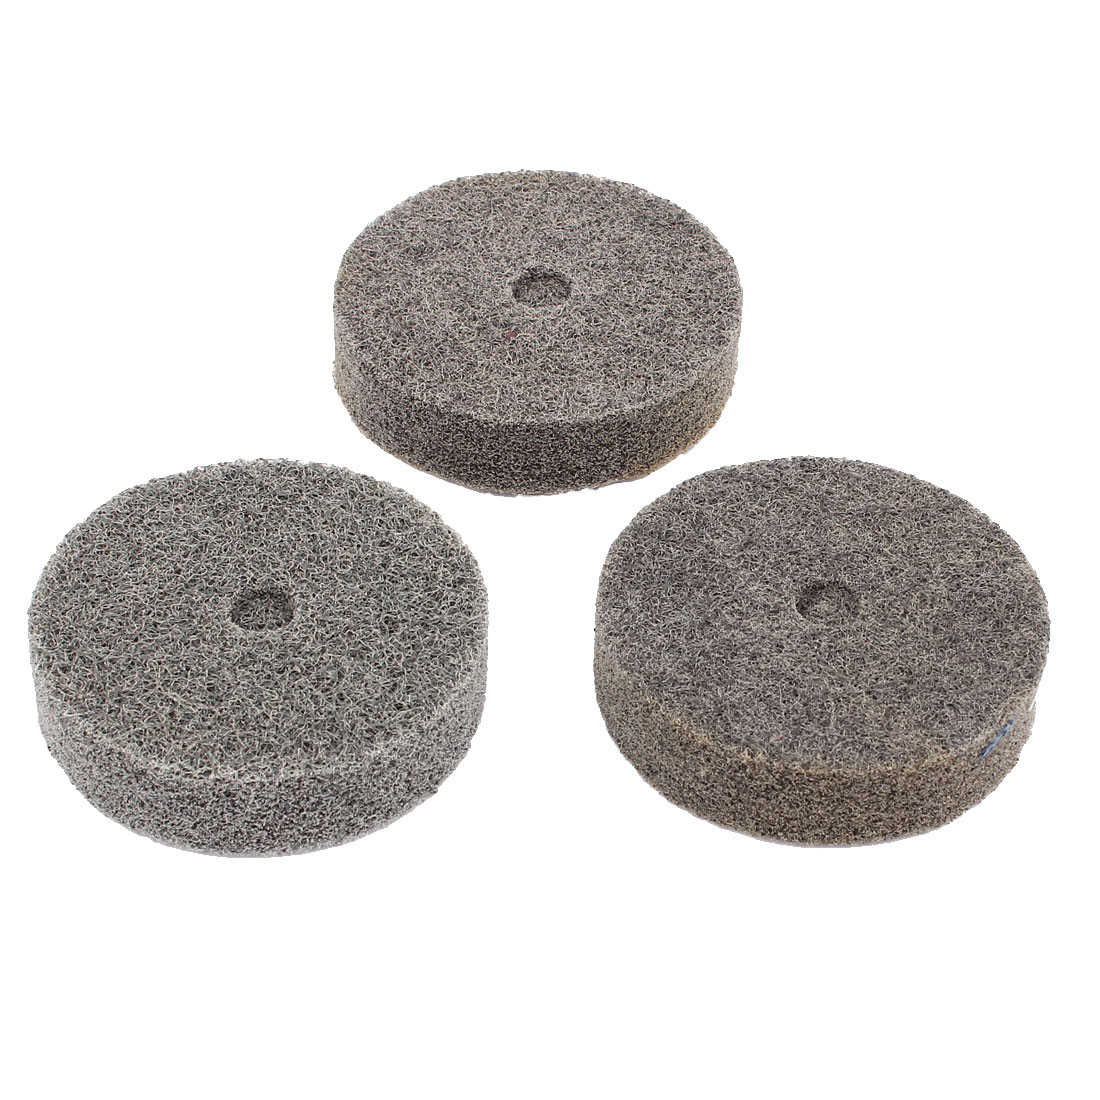 Unique Bargains3pcs 180 Grit Gray Nylon Fiber Cylindrical Grinding Wheel Grinder Tool